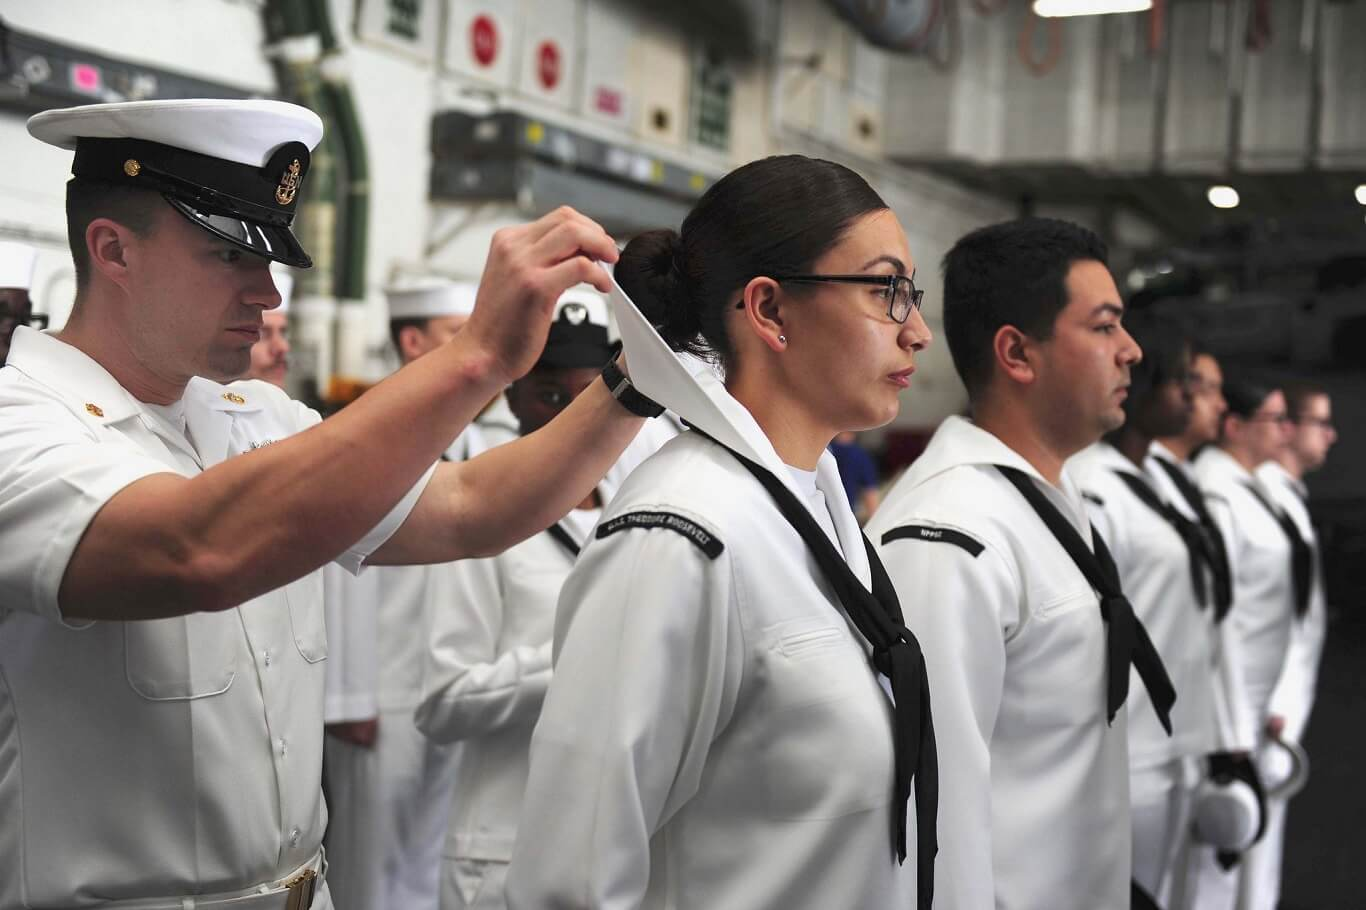 woman from the US Merchant Marine Academy claimed sexual assault